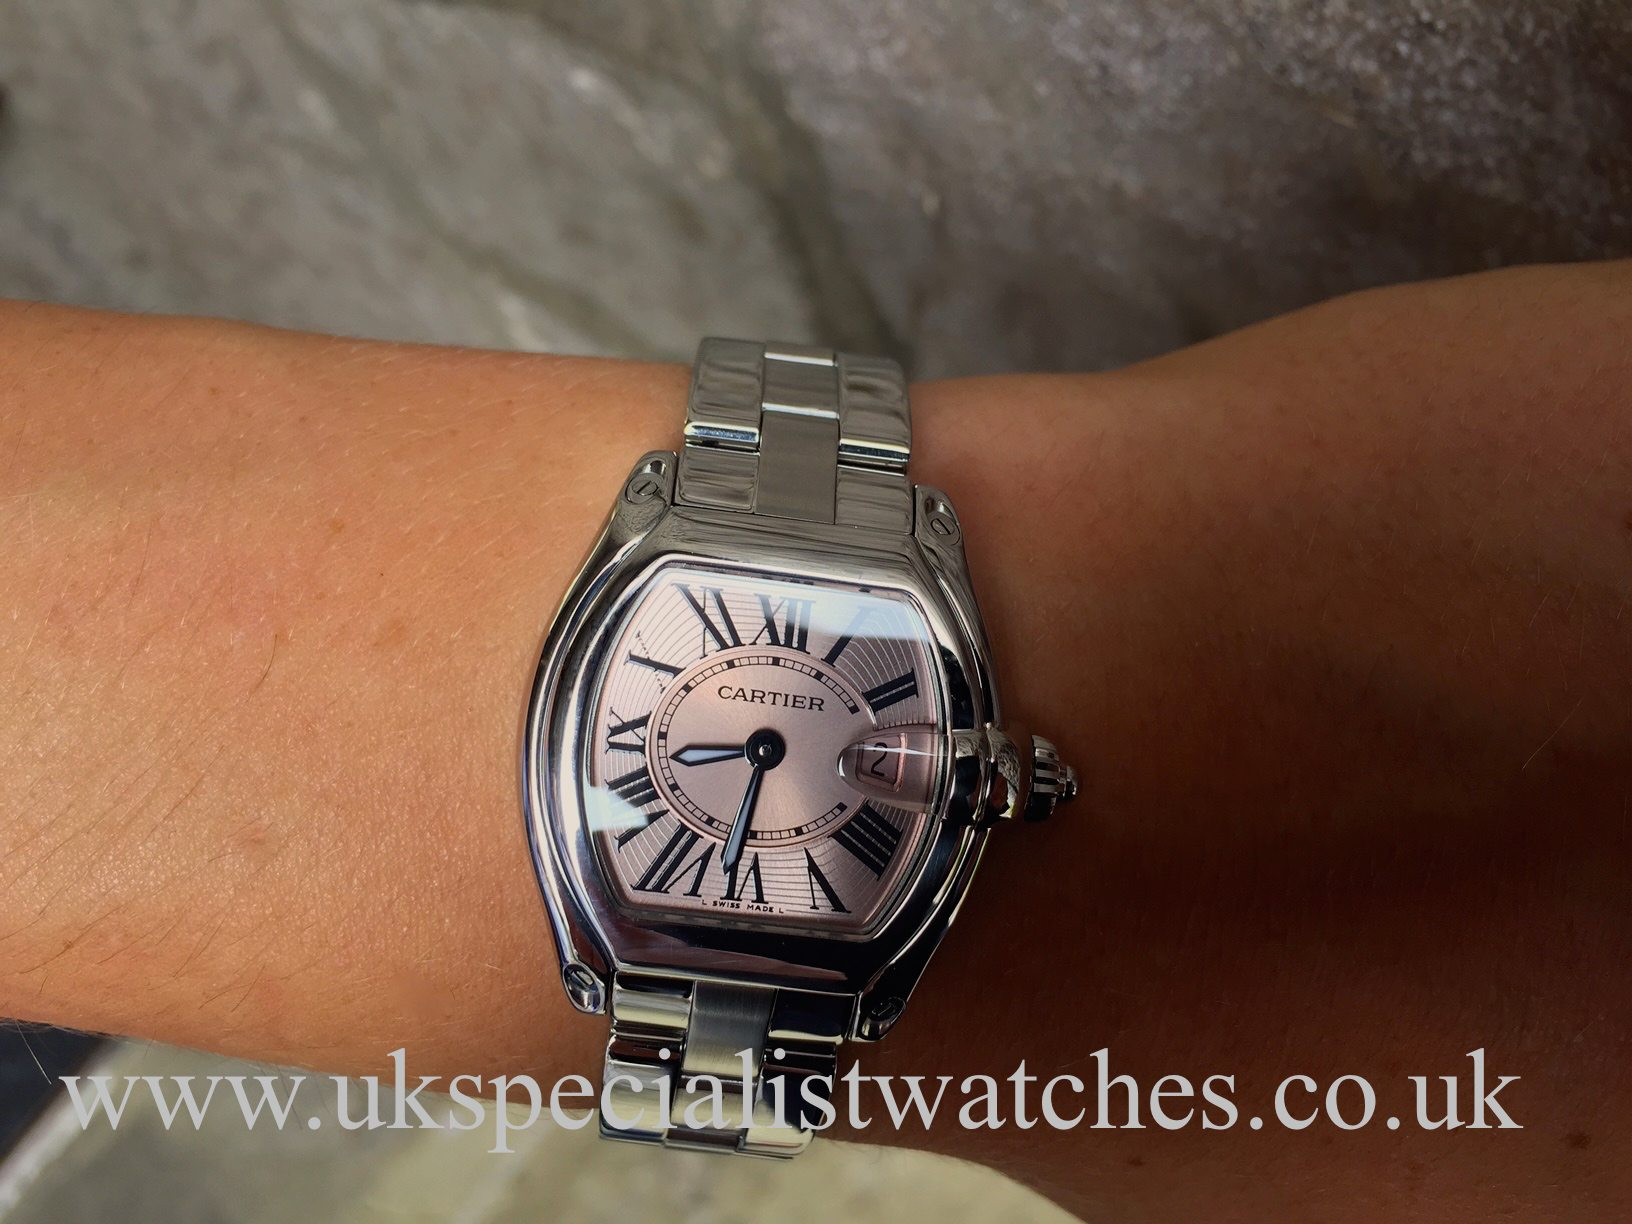 UK Specialist Watches have a mid size cartier Roadster in stainless steel  with a pink Roman 0162094919